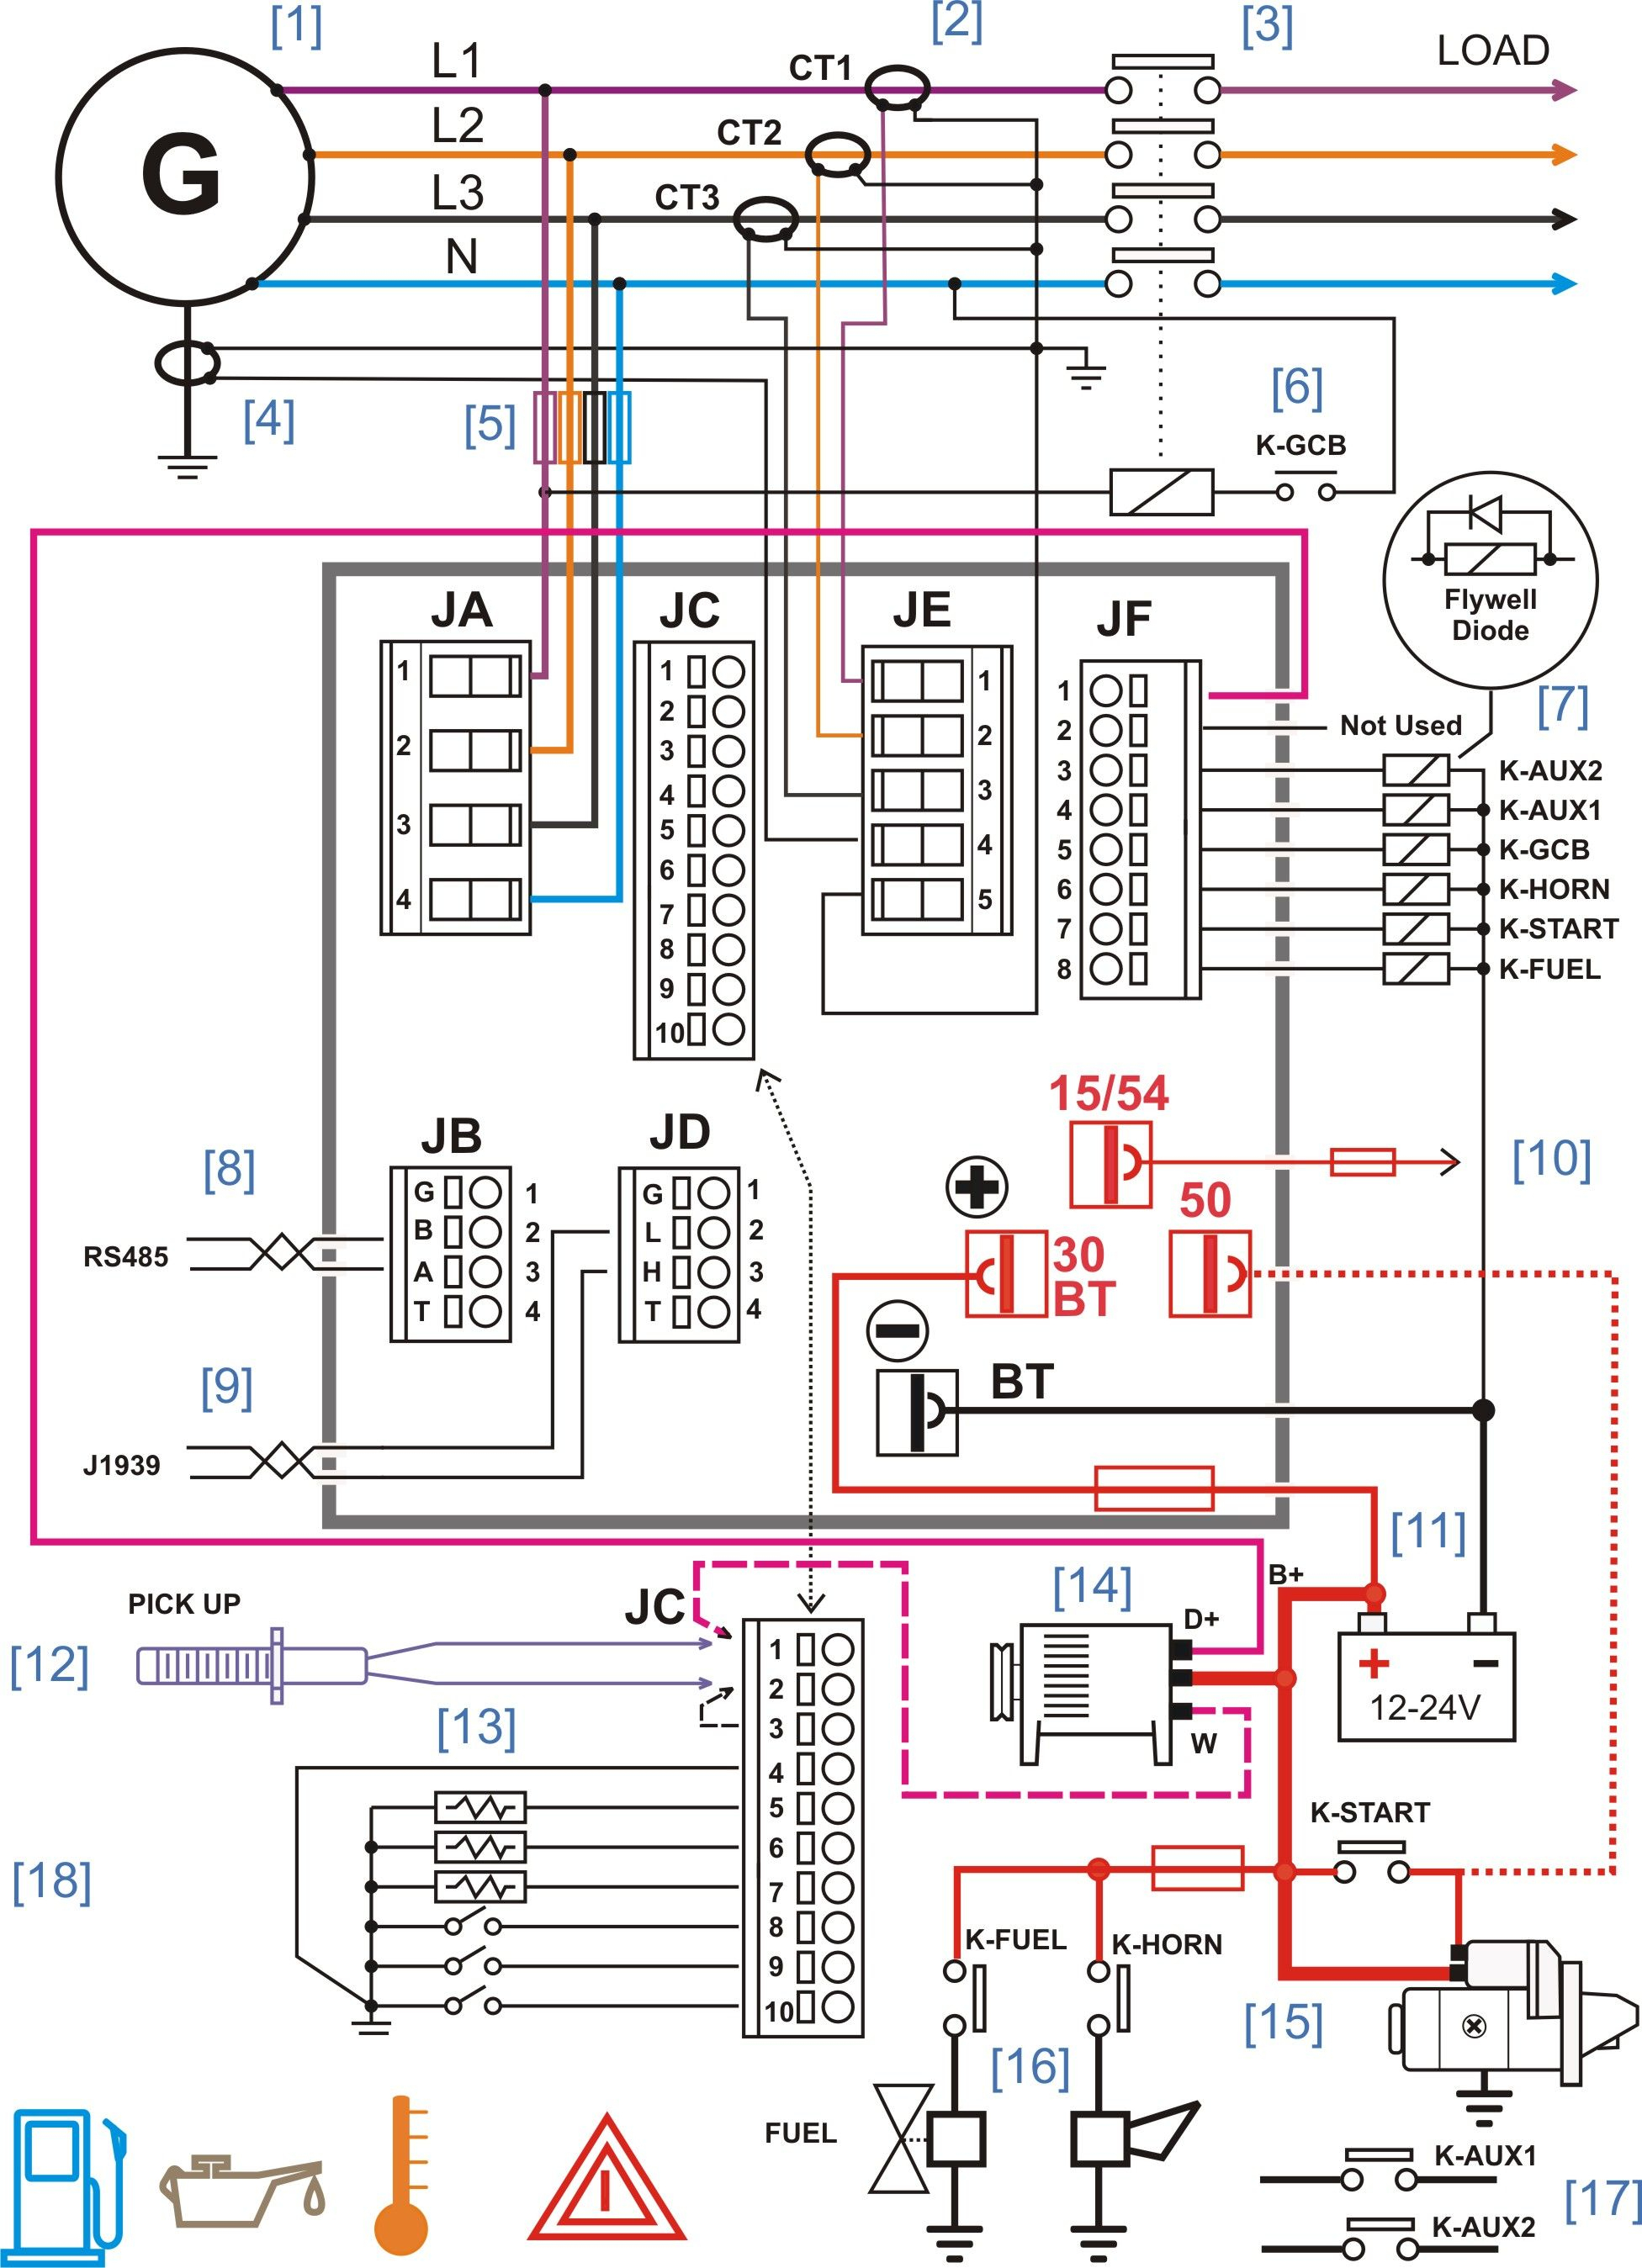 Panel Wiring Diagram - Today Wiring Diagram - Electrical Sub Panel Wiring Diagram